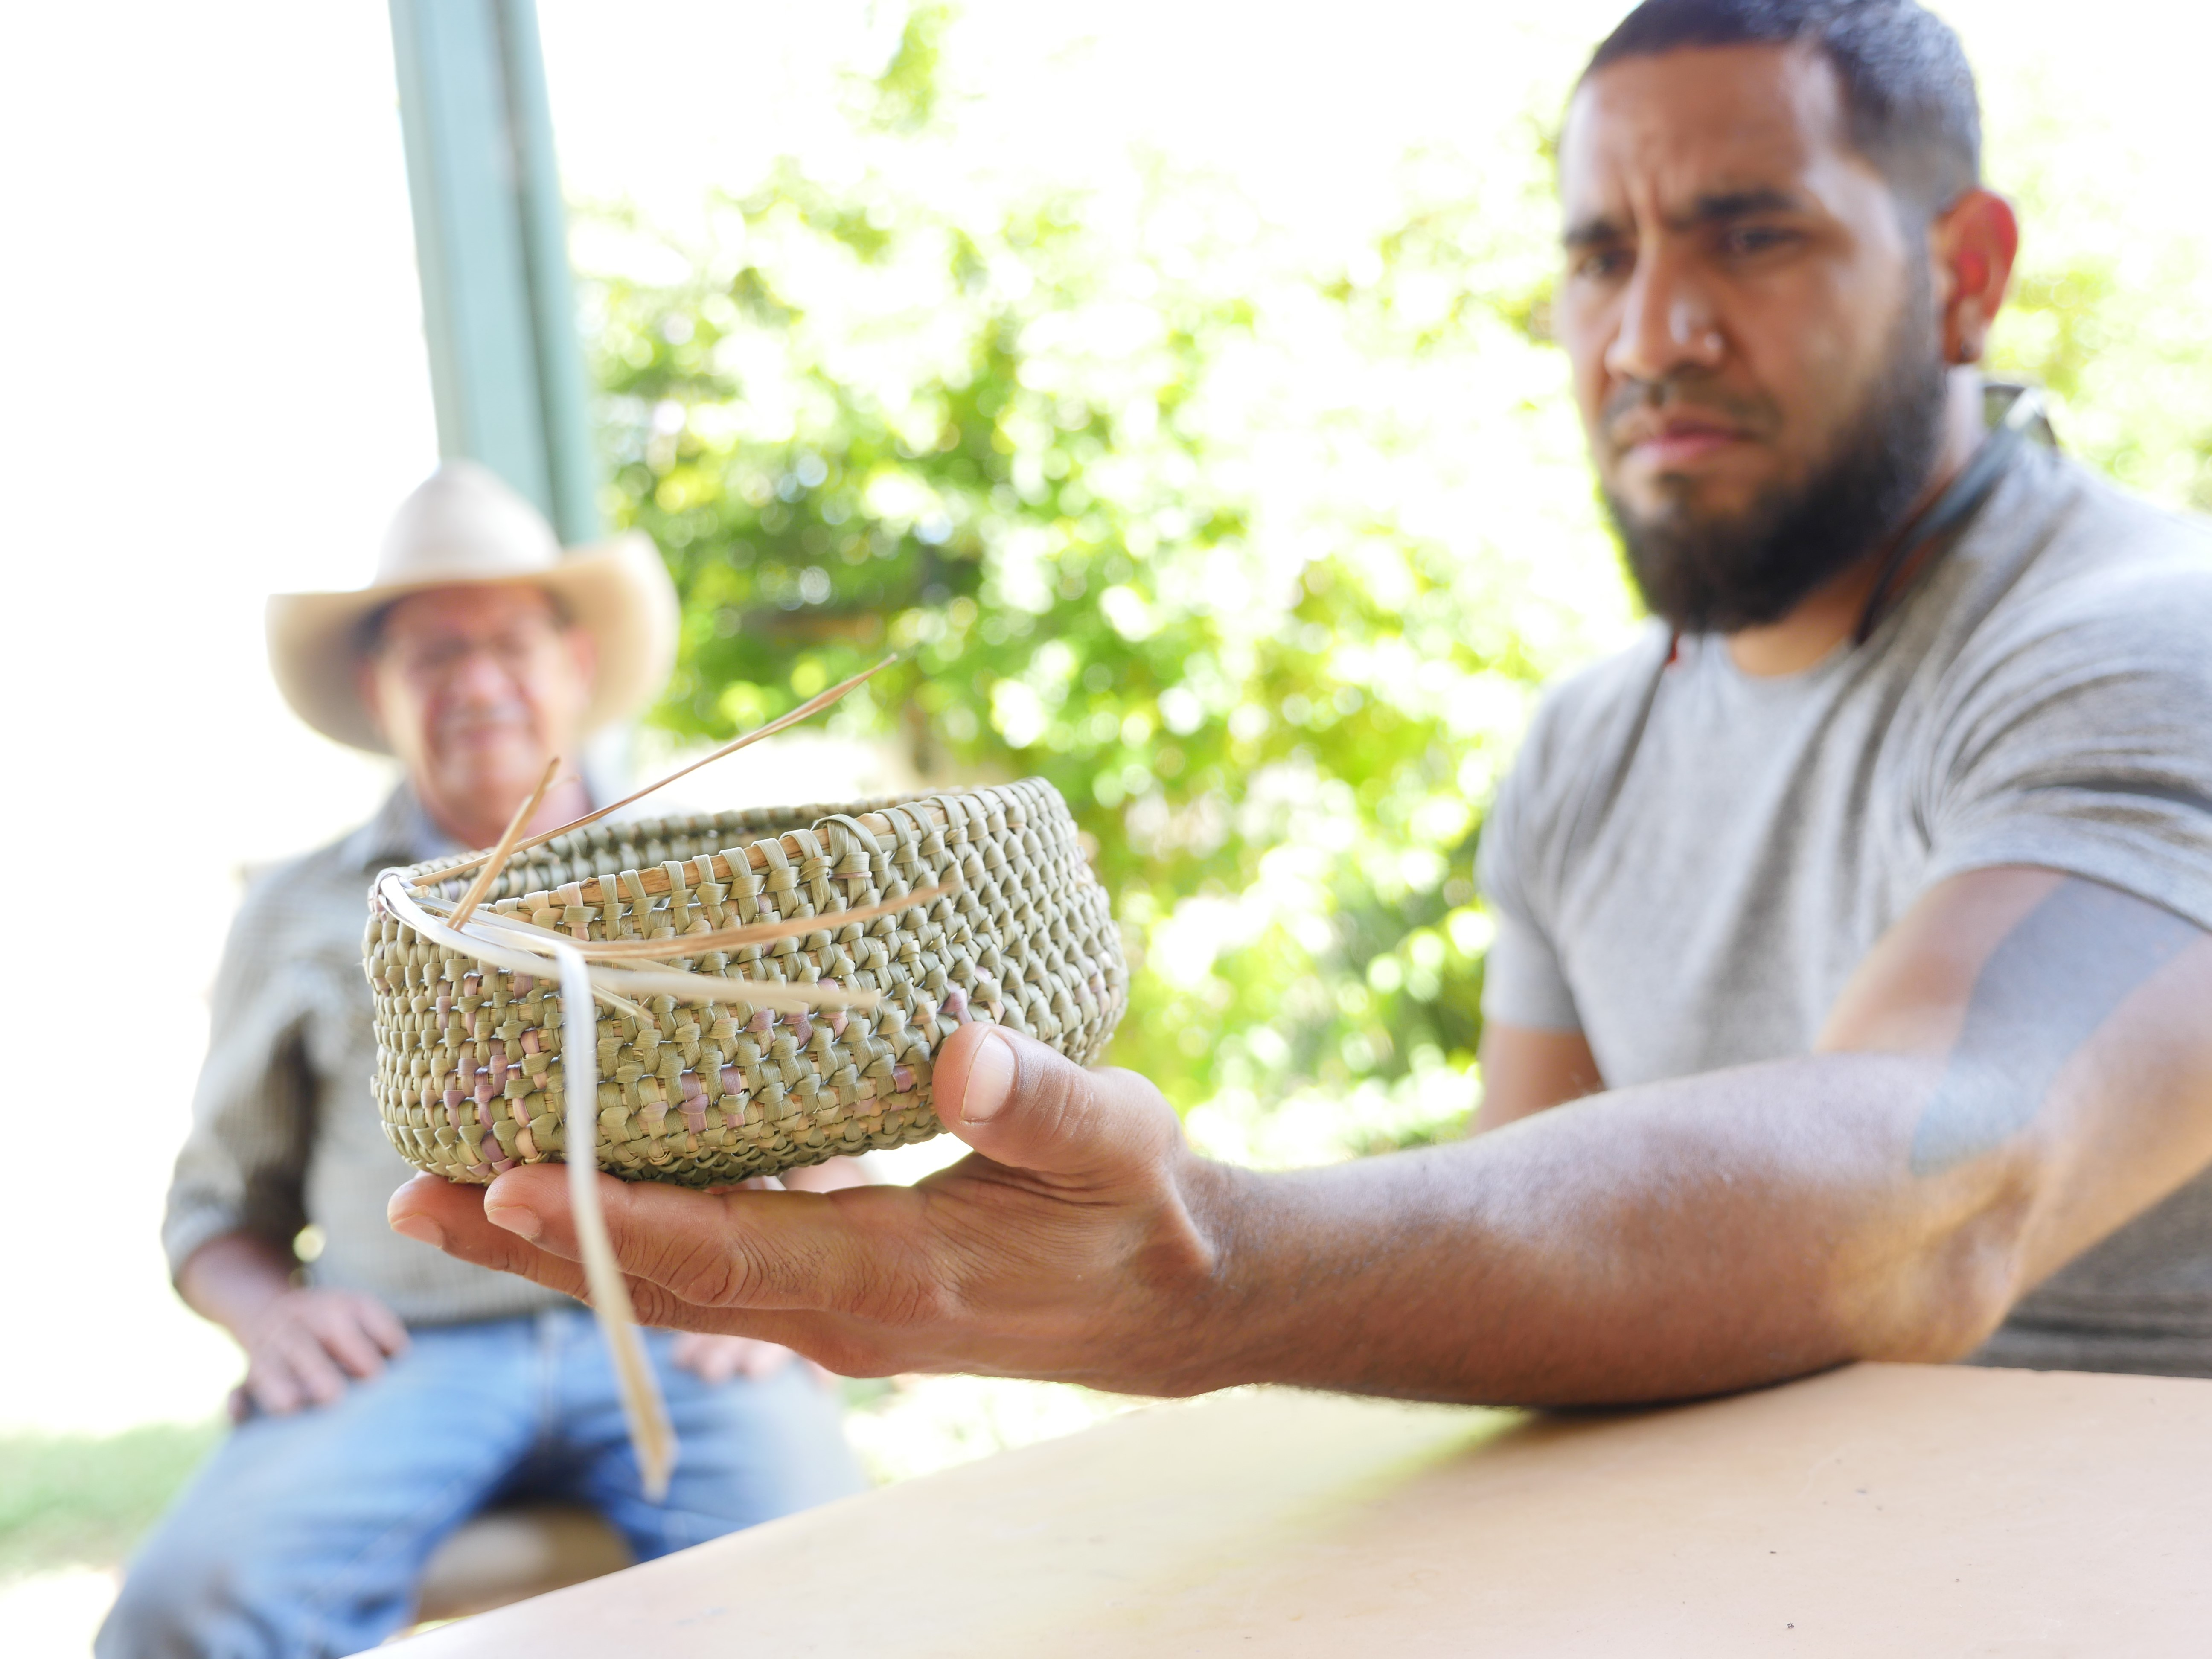 young indigenous man holding woven basket with older indigenous man sitting in the background, both men are out of focus